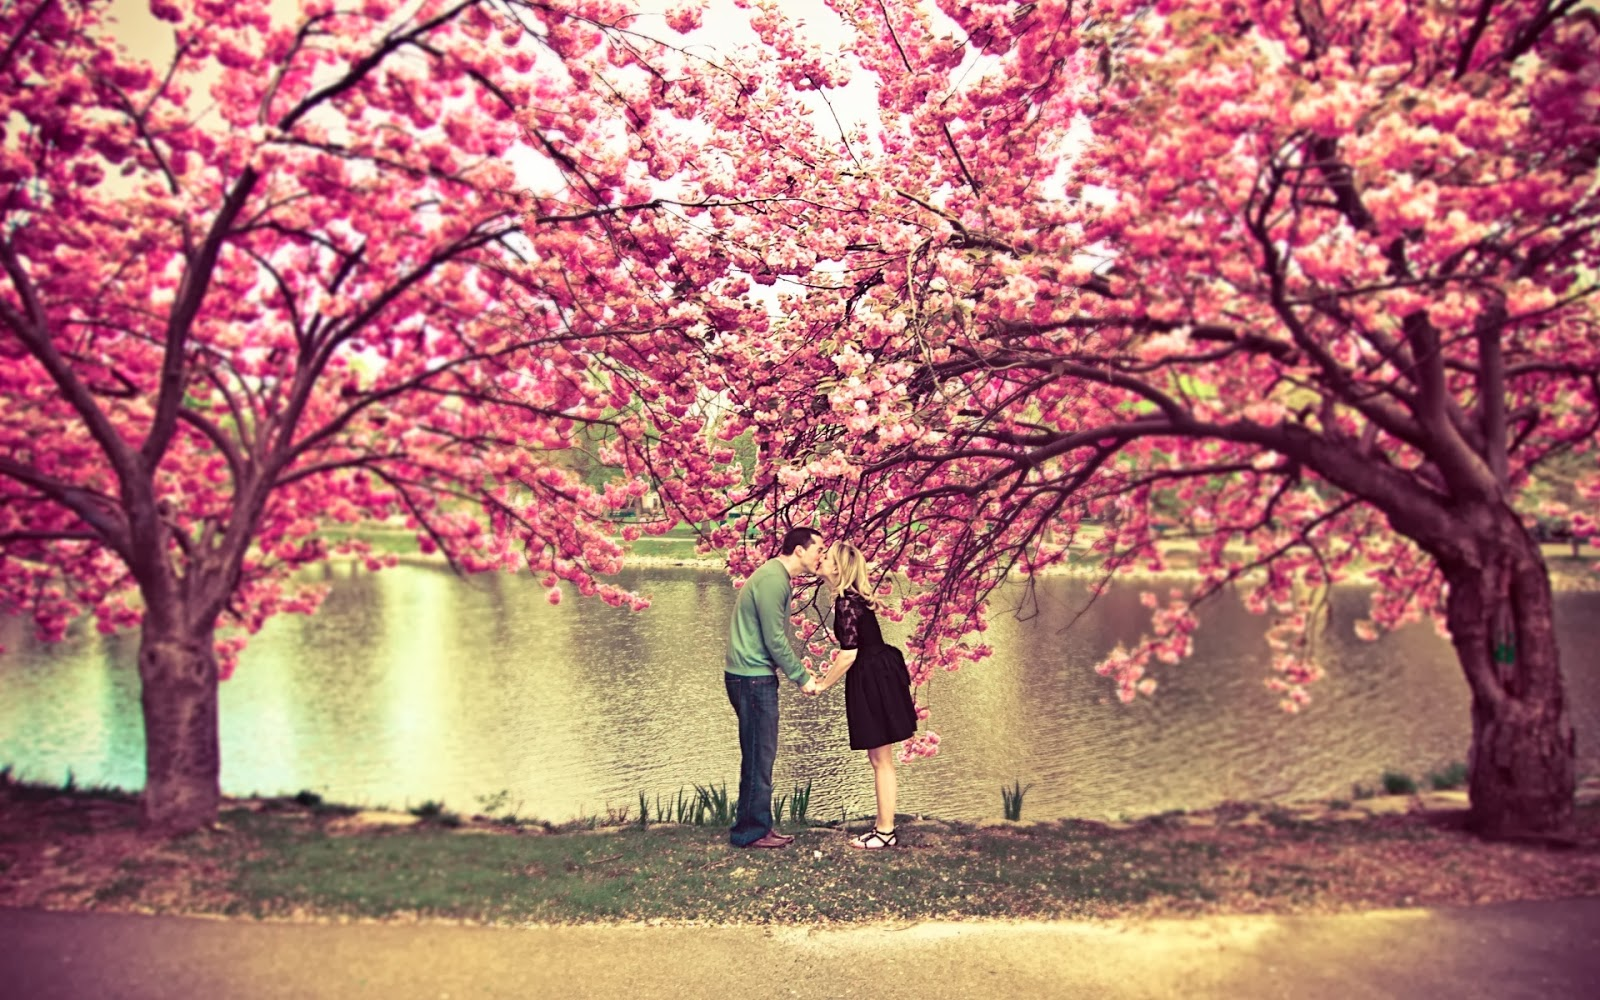 Love-pair-man-kisses-womenat-park-romantic-picture.jpg